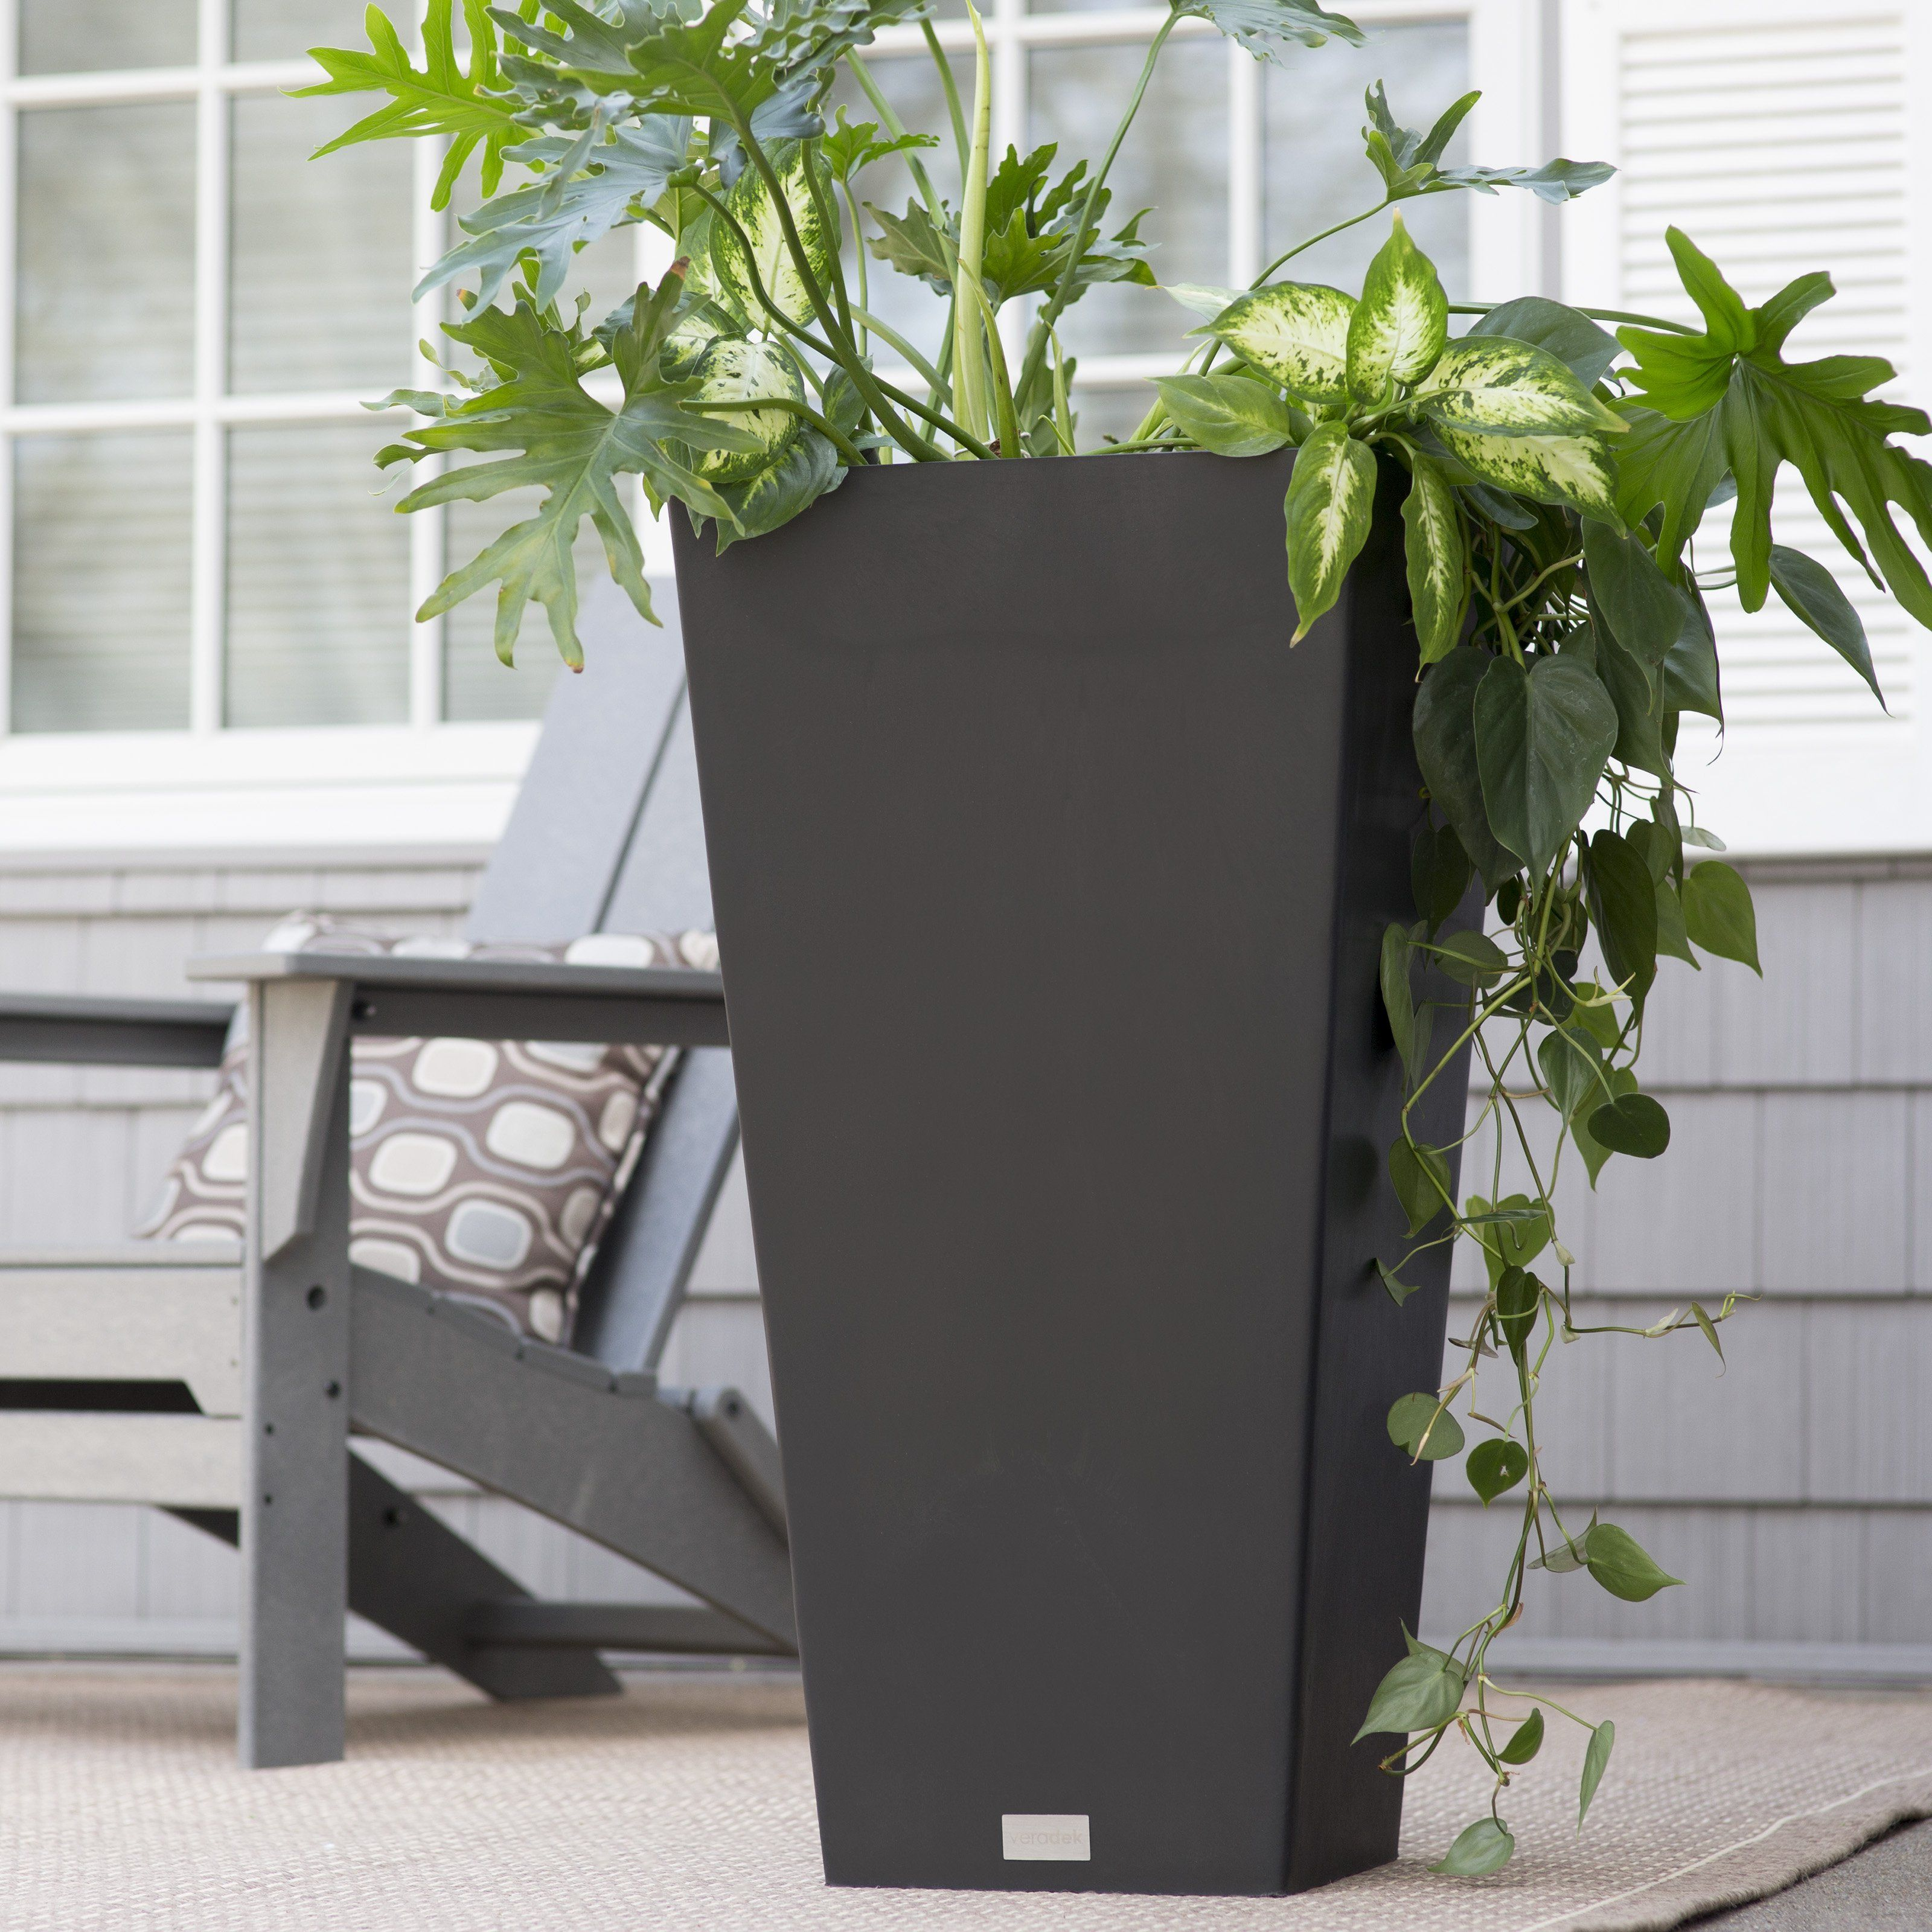 Veradek Midland Tall Square Planter - Tall and distinctive, the Veradek Midland Tall Square Planter is beautiful flanked along an entrance wall or as a patio accent. It's perfectly...